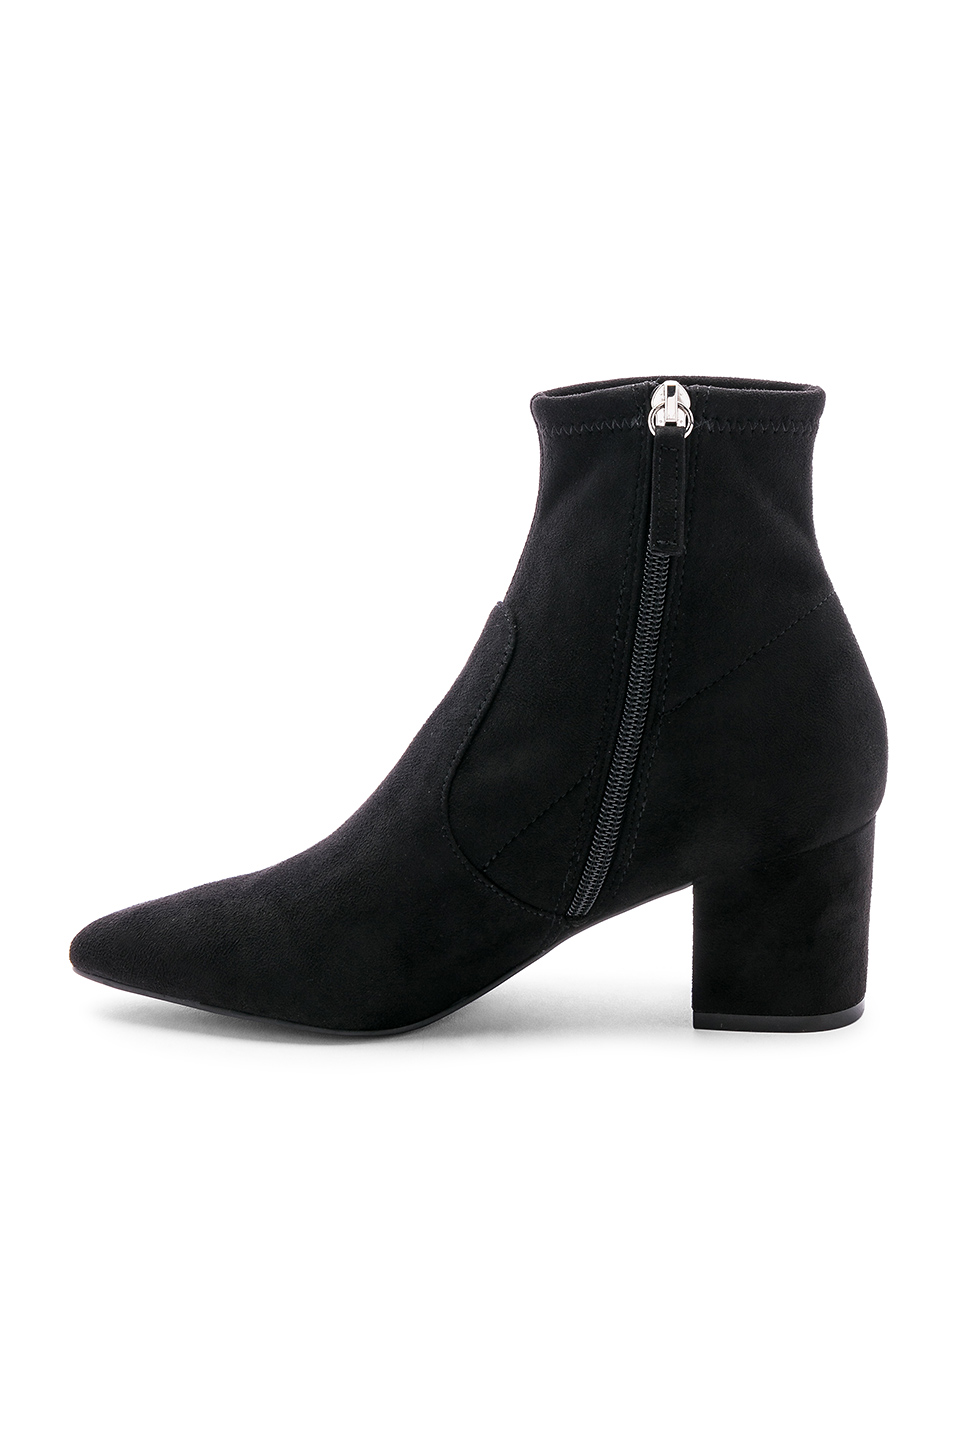 buy popular sports shoes los angeles Blaire Bootie, Steve Madden